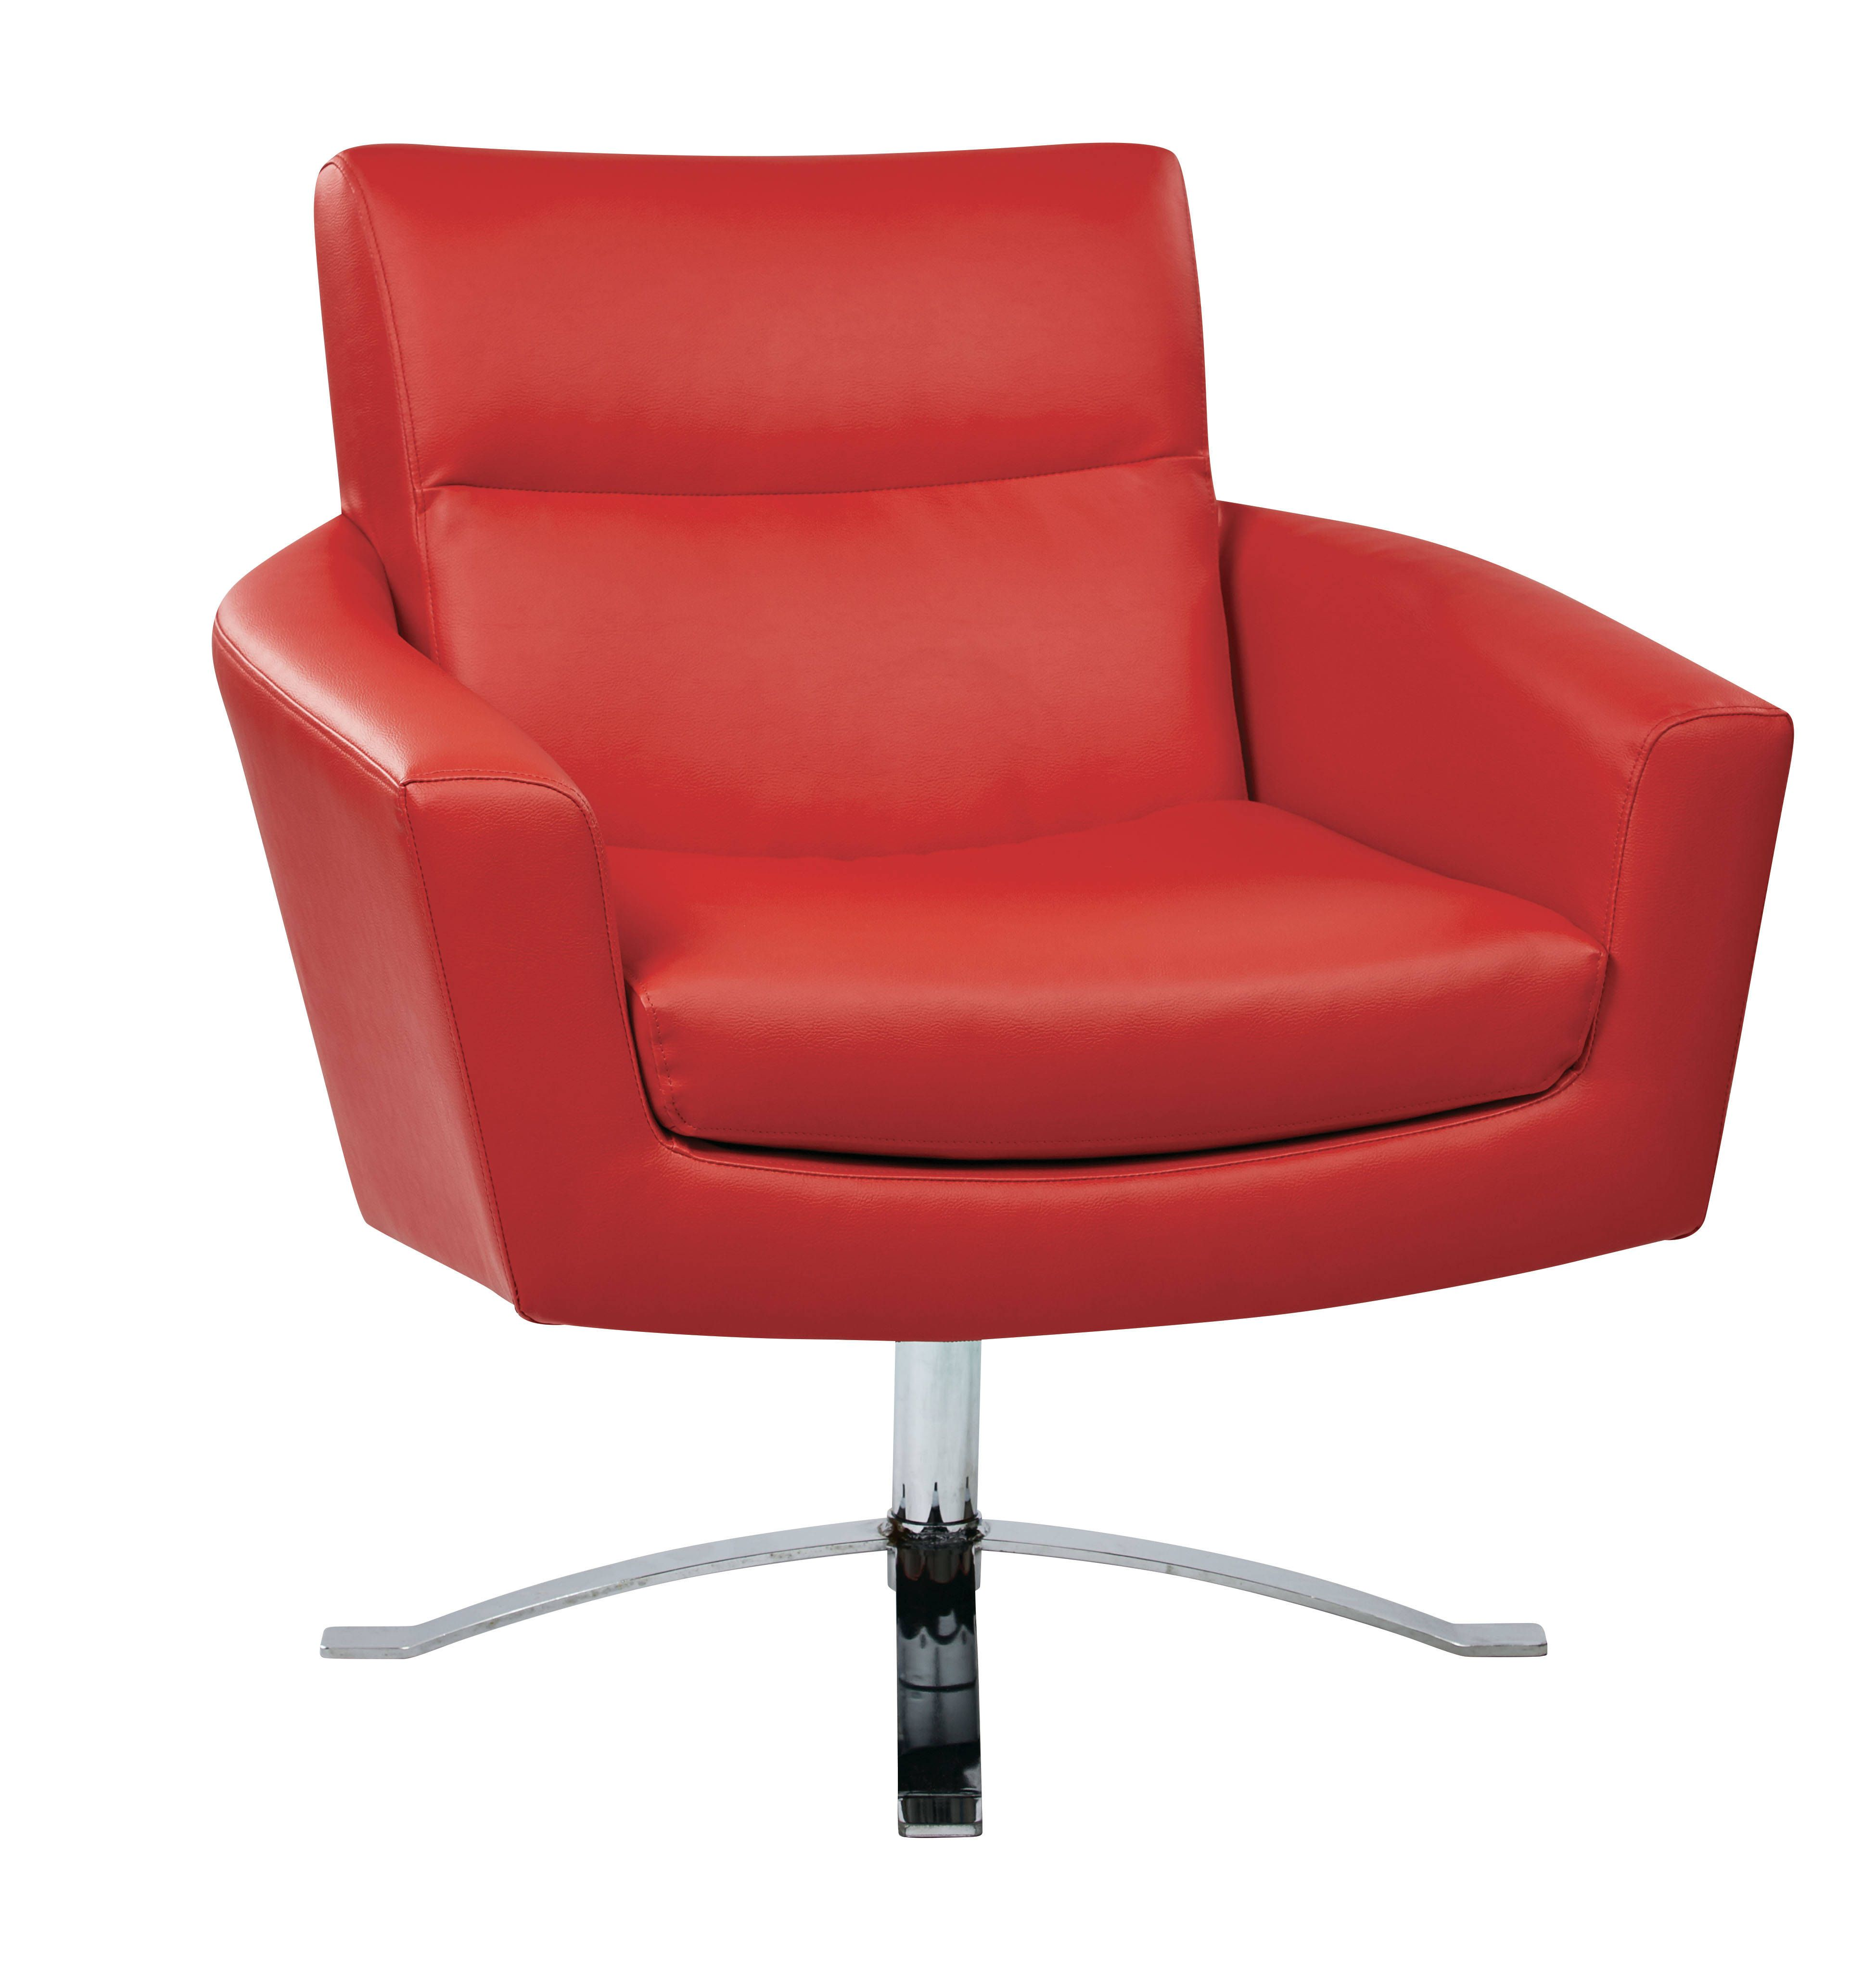 Nova Contemporary Red Faux Leather Chrome Base Chair